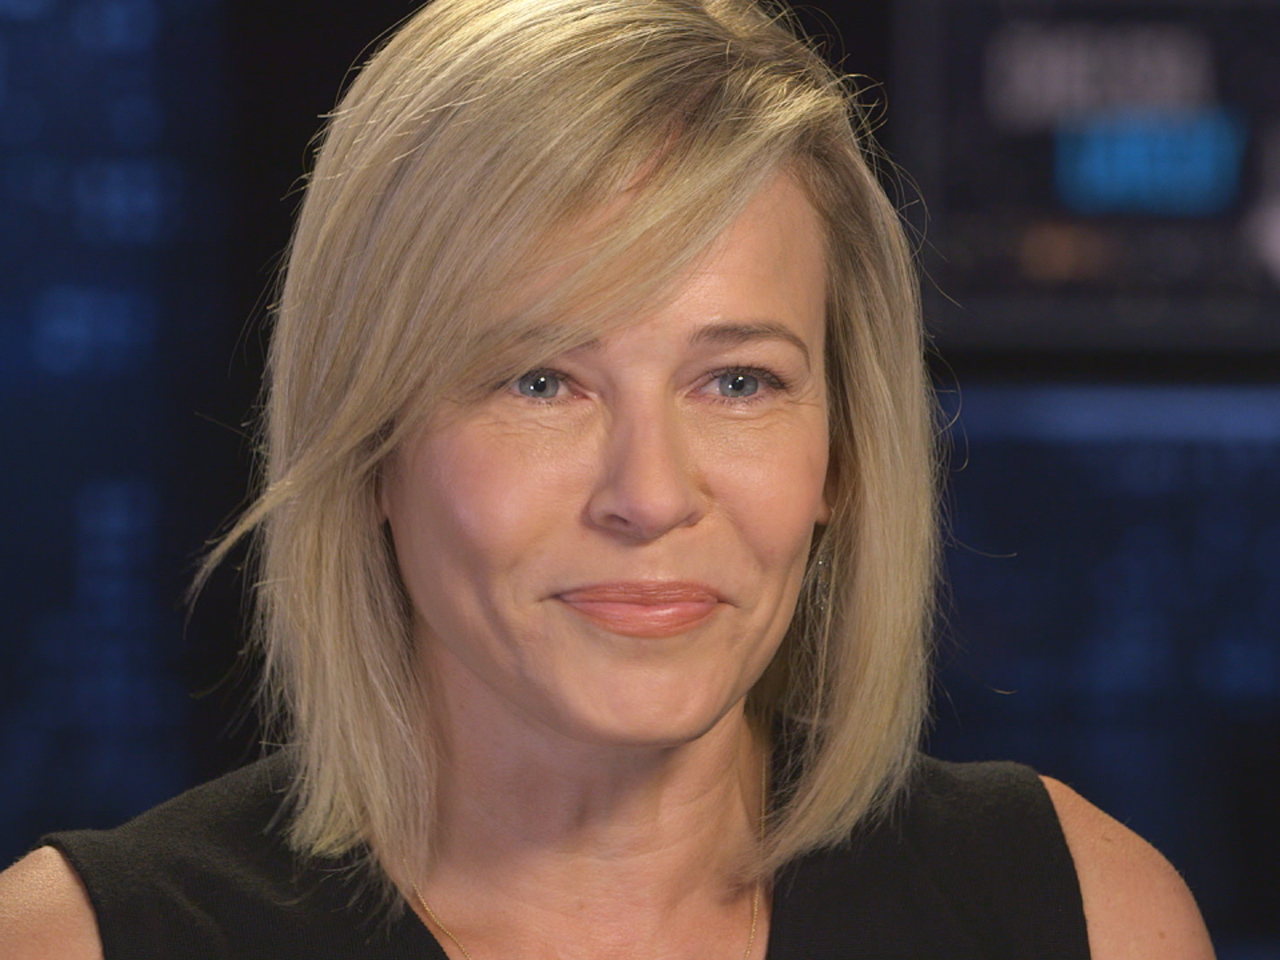 chelsea handler: the drunk mean girl who's actually pretty nice